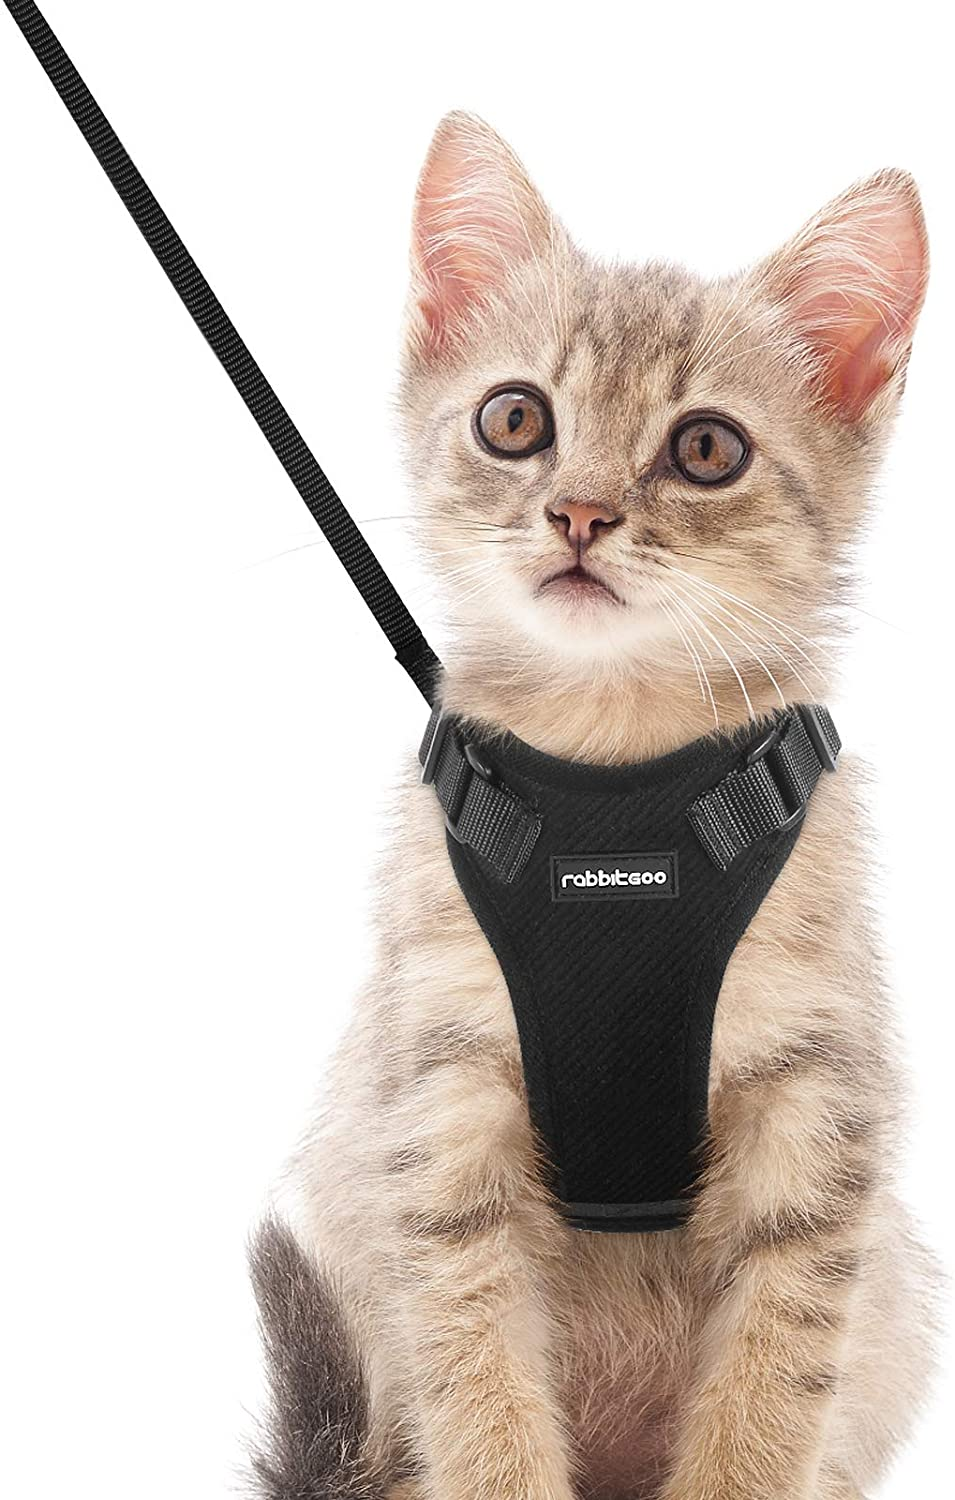 rabbitgoo Cat Harness and Leash Set for Walking XS Black Adjustable Easy Control Reflective Strips Jacket Plush Escape Proof Walking Outdoor Vest for Cold Weather Chest: Chest: 13.5-16